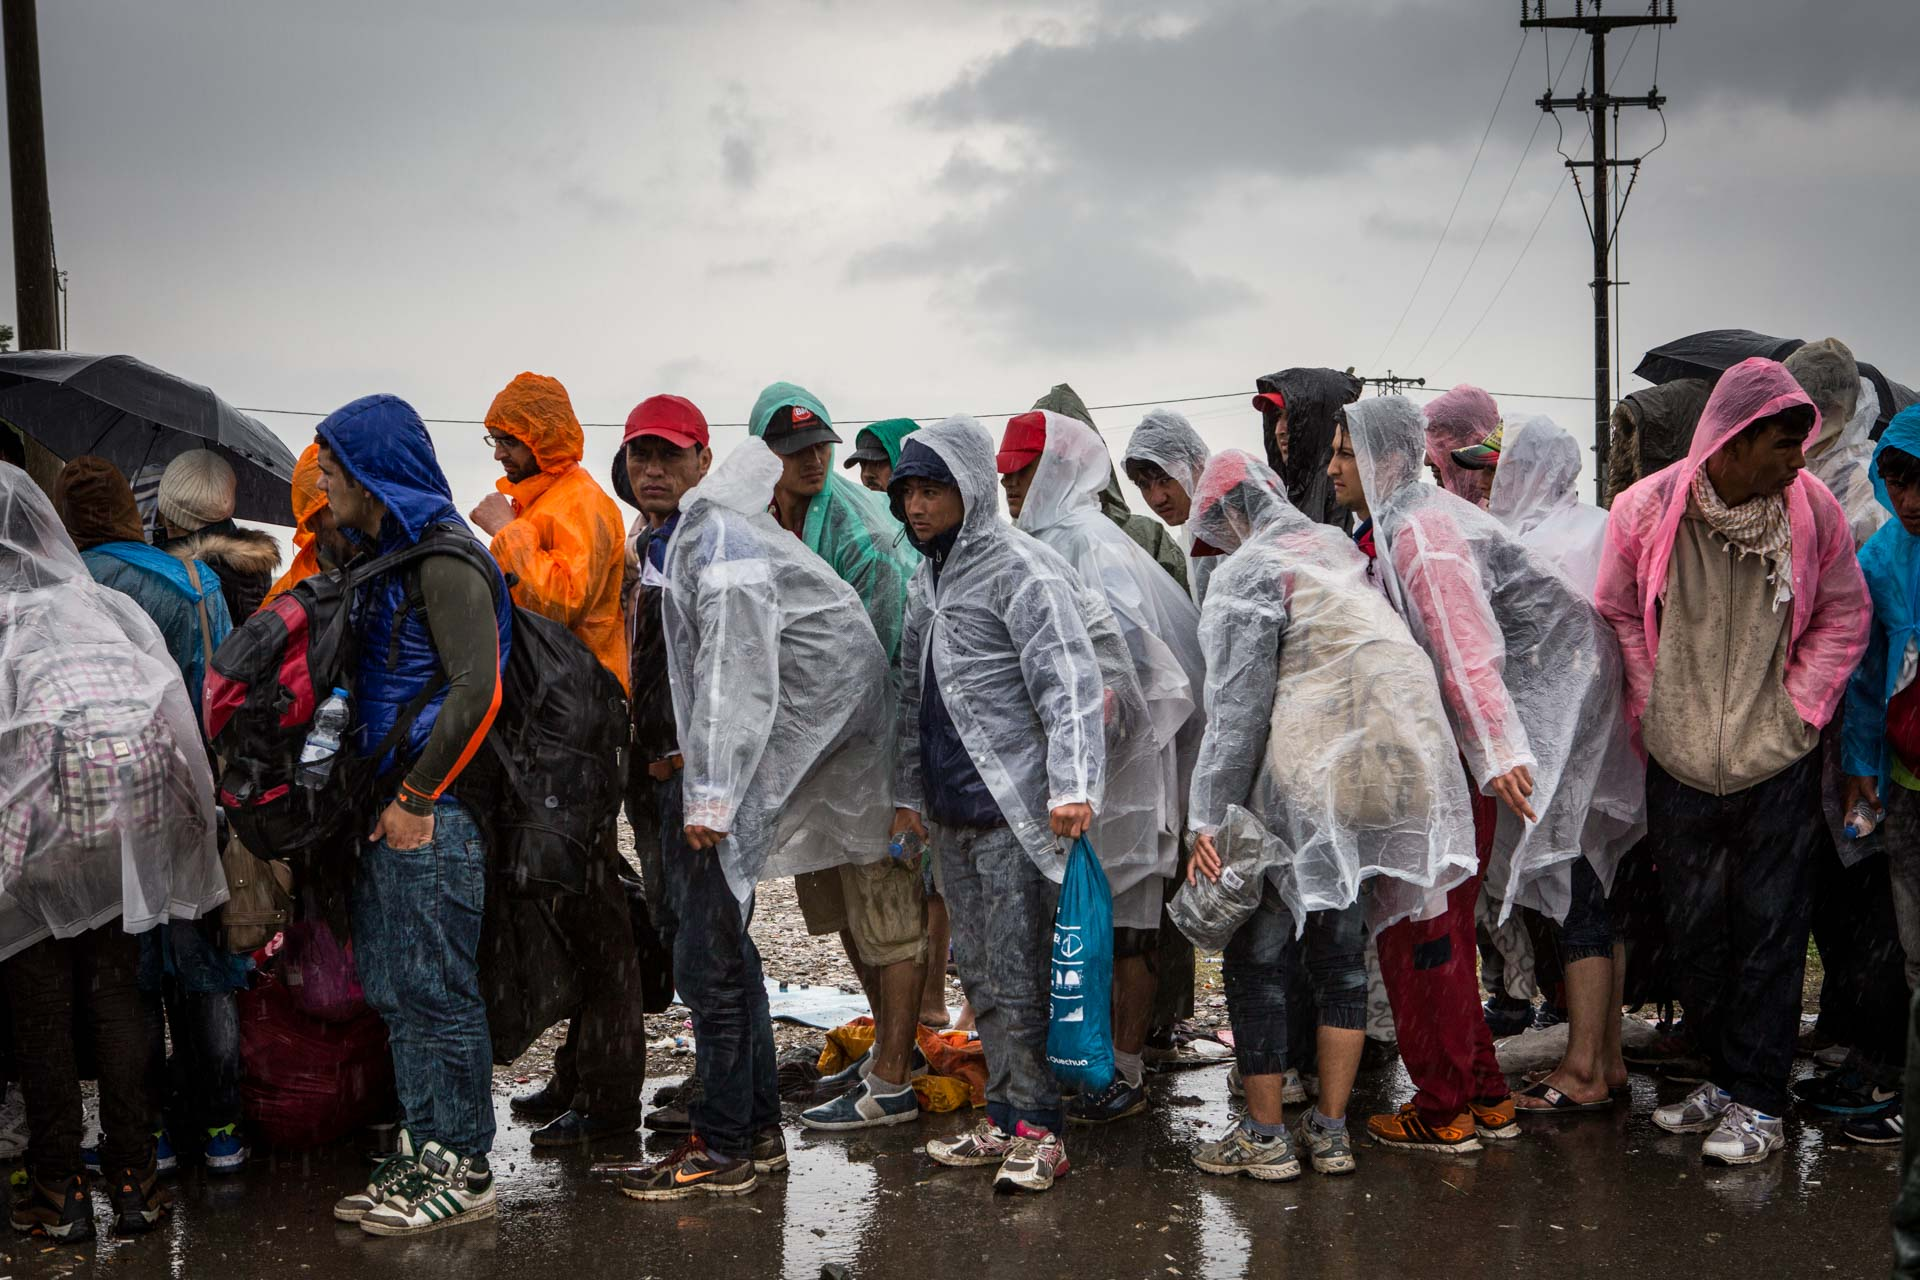 Refugees queue up for a place on a bus to Slovenia, while a rainstorm sets in in Tovarnik, Croatia.